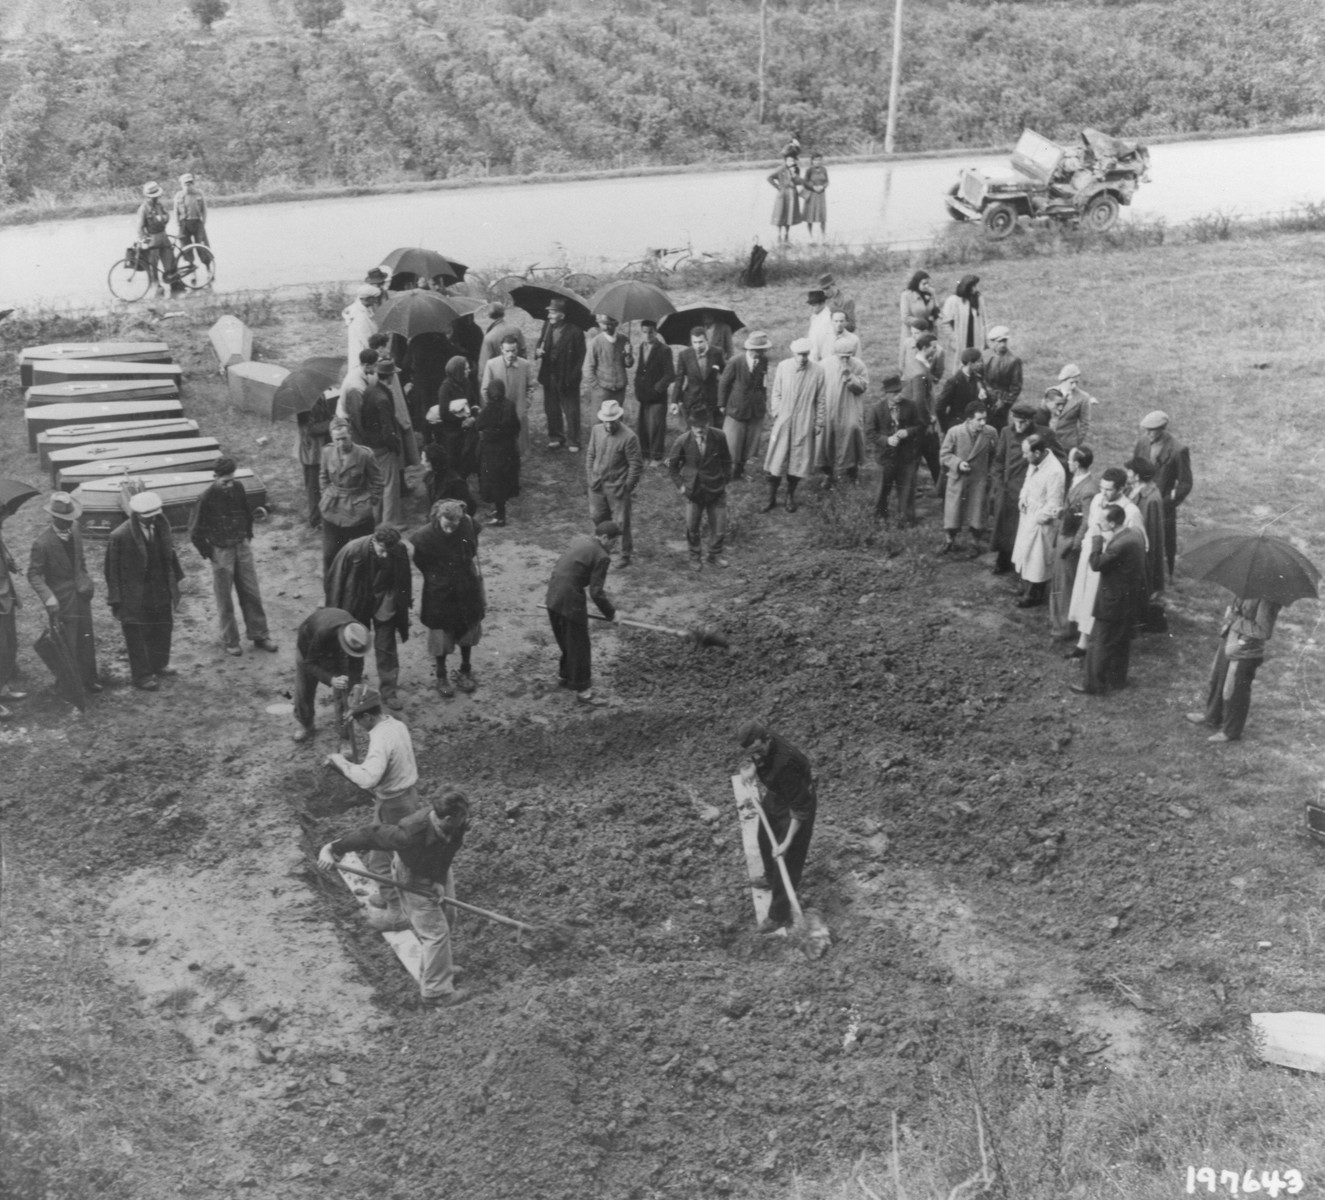 Italian civilians exhume a mass grave containing the bodies of 38 Italians shot by German forces.    The victims were chosen at random and killed in reprisal for the murder of an Italian Fascist by partisans in August 1944.  A young Italian woman who protested the killings to the Germans was shot along with the other hostages.